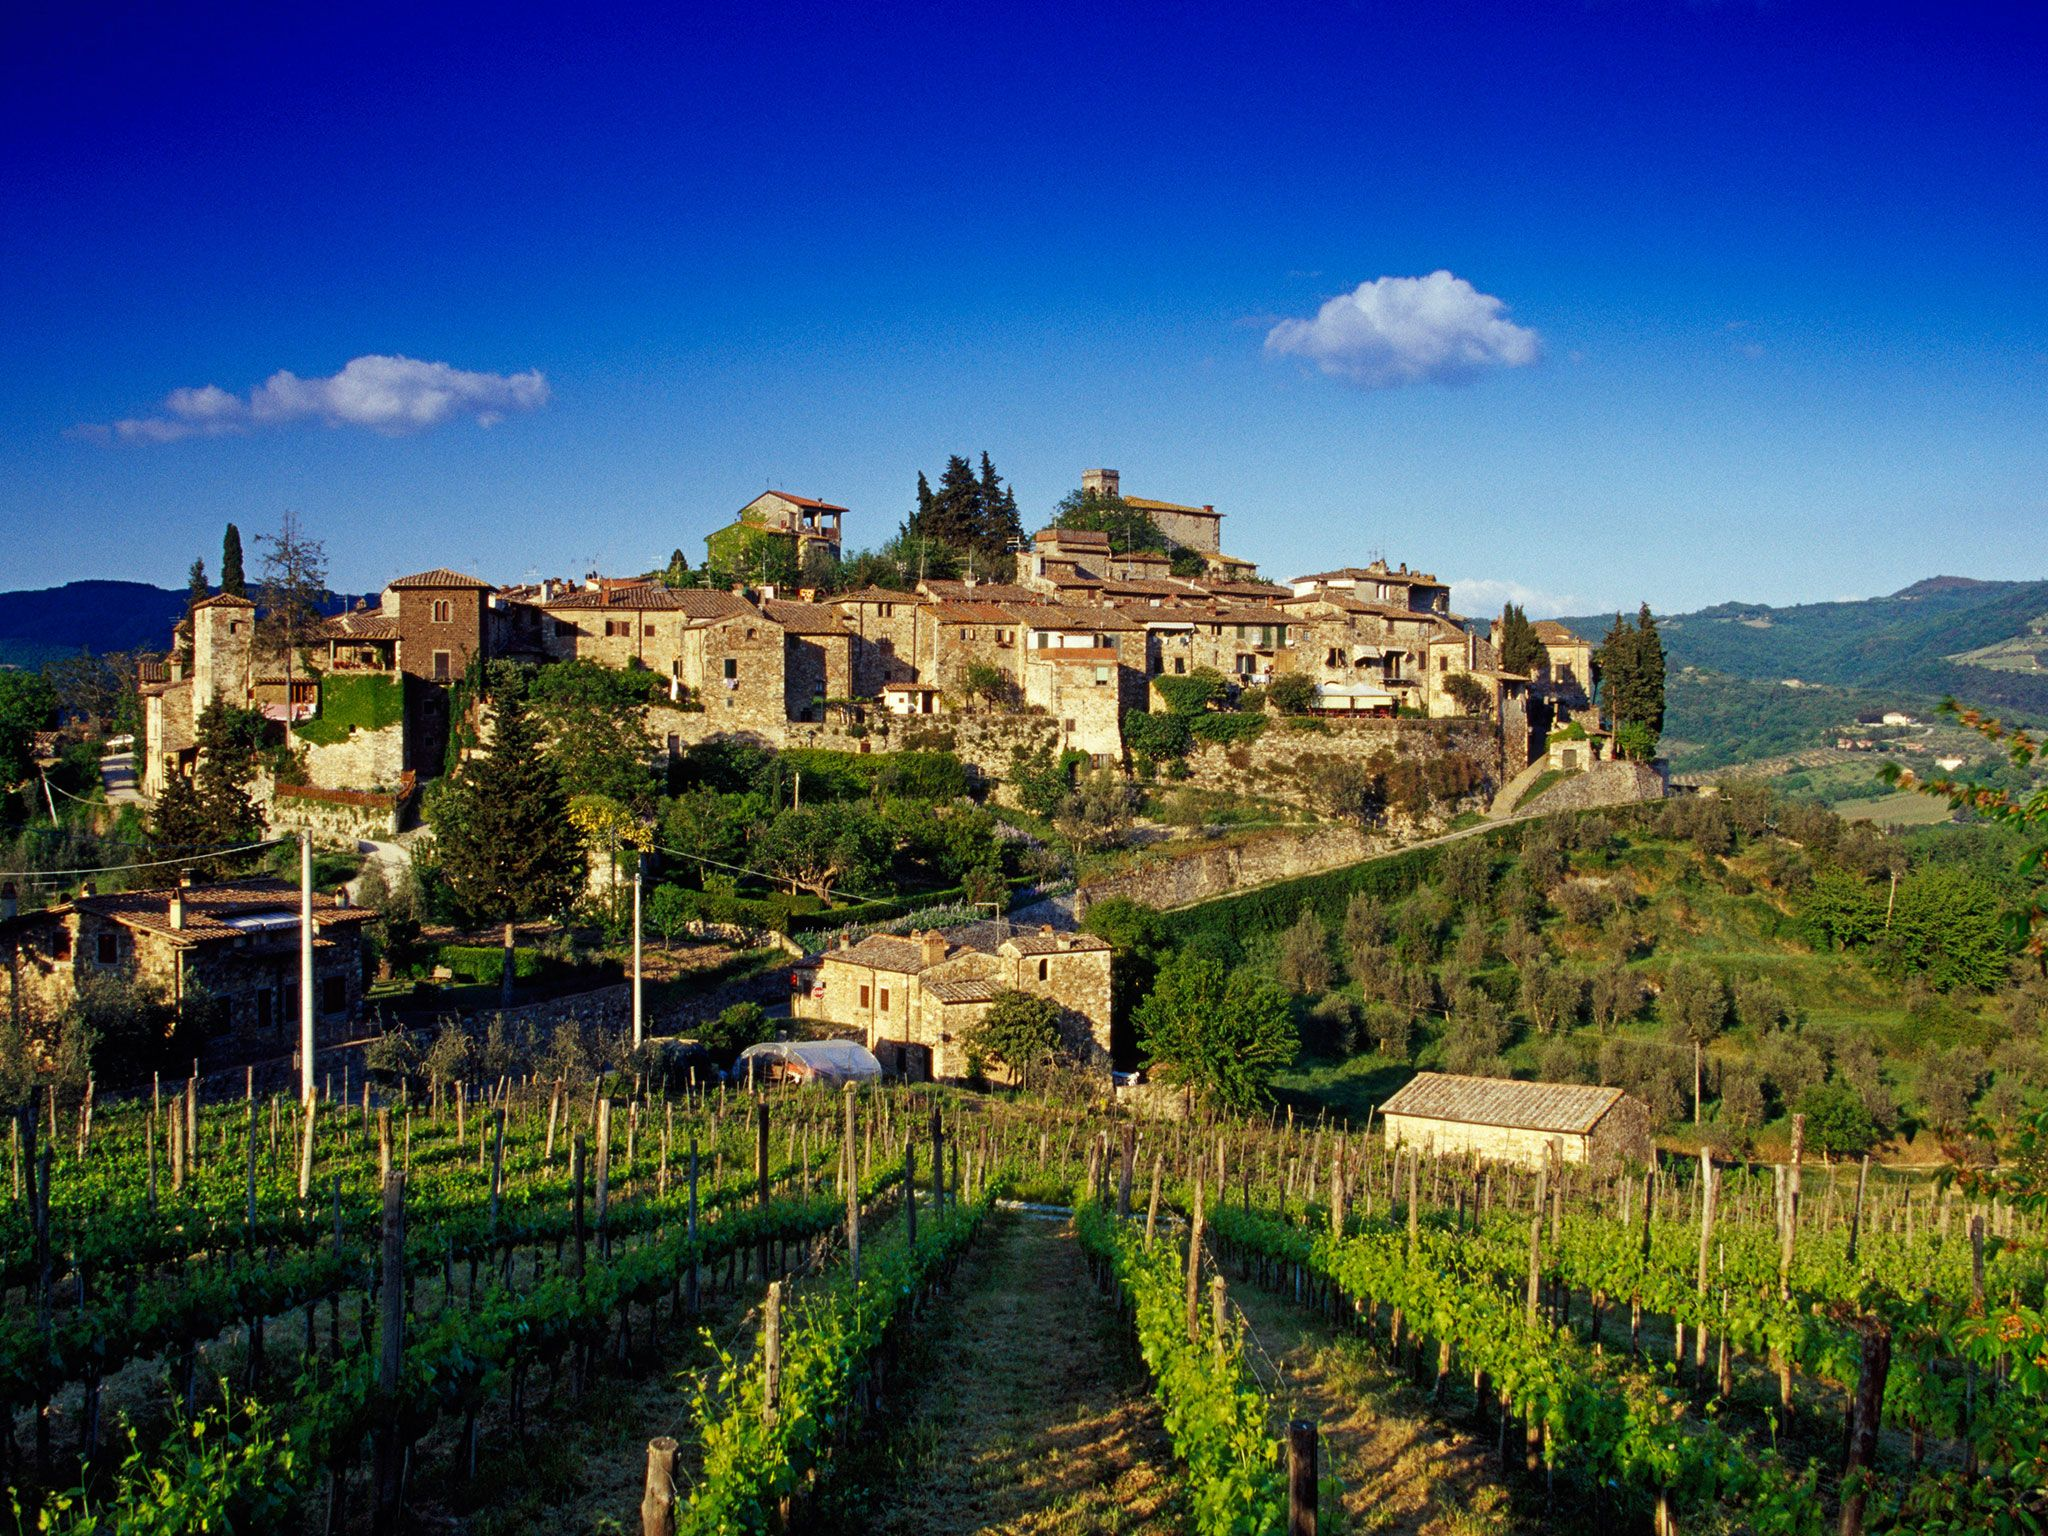 best wine tours in tuscany italy - photo#18